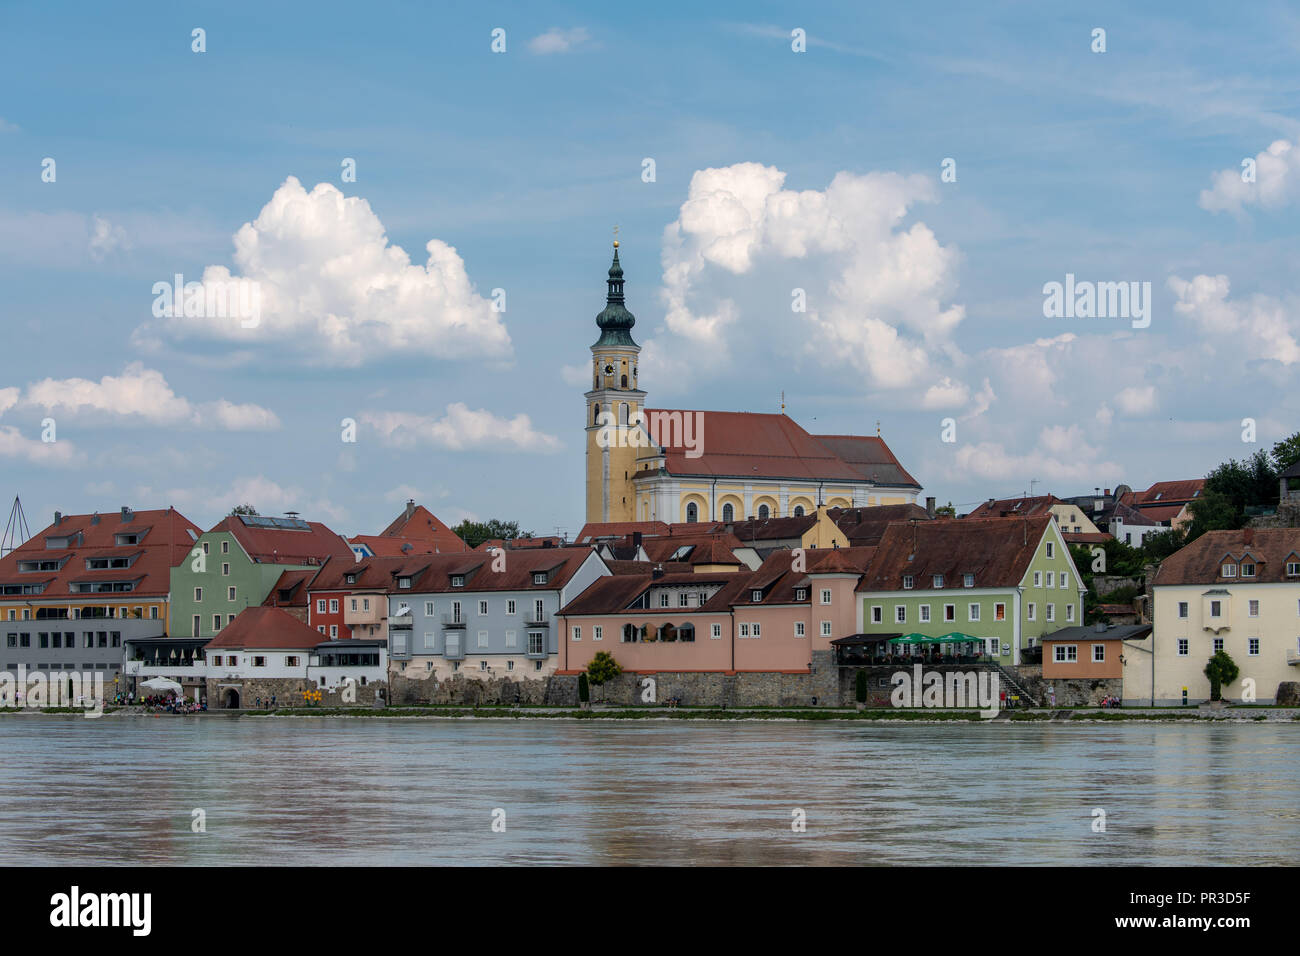 Quaint church and town as seen from Danube River Stock Photo